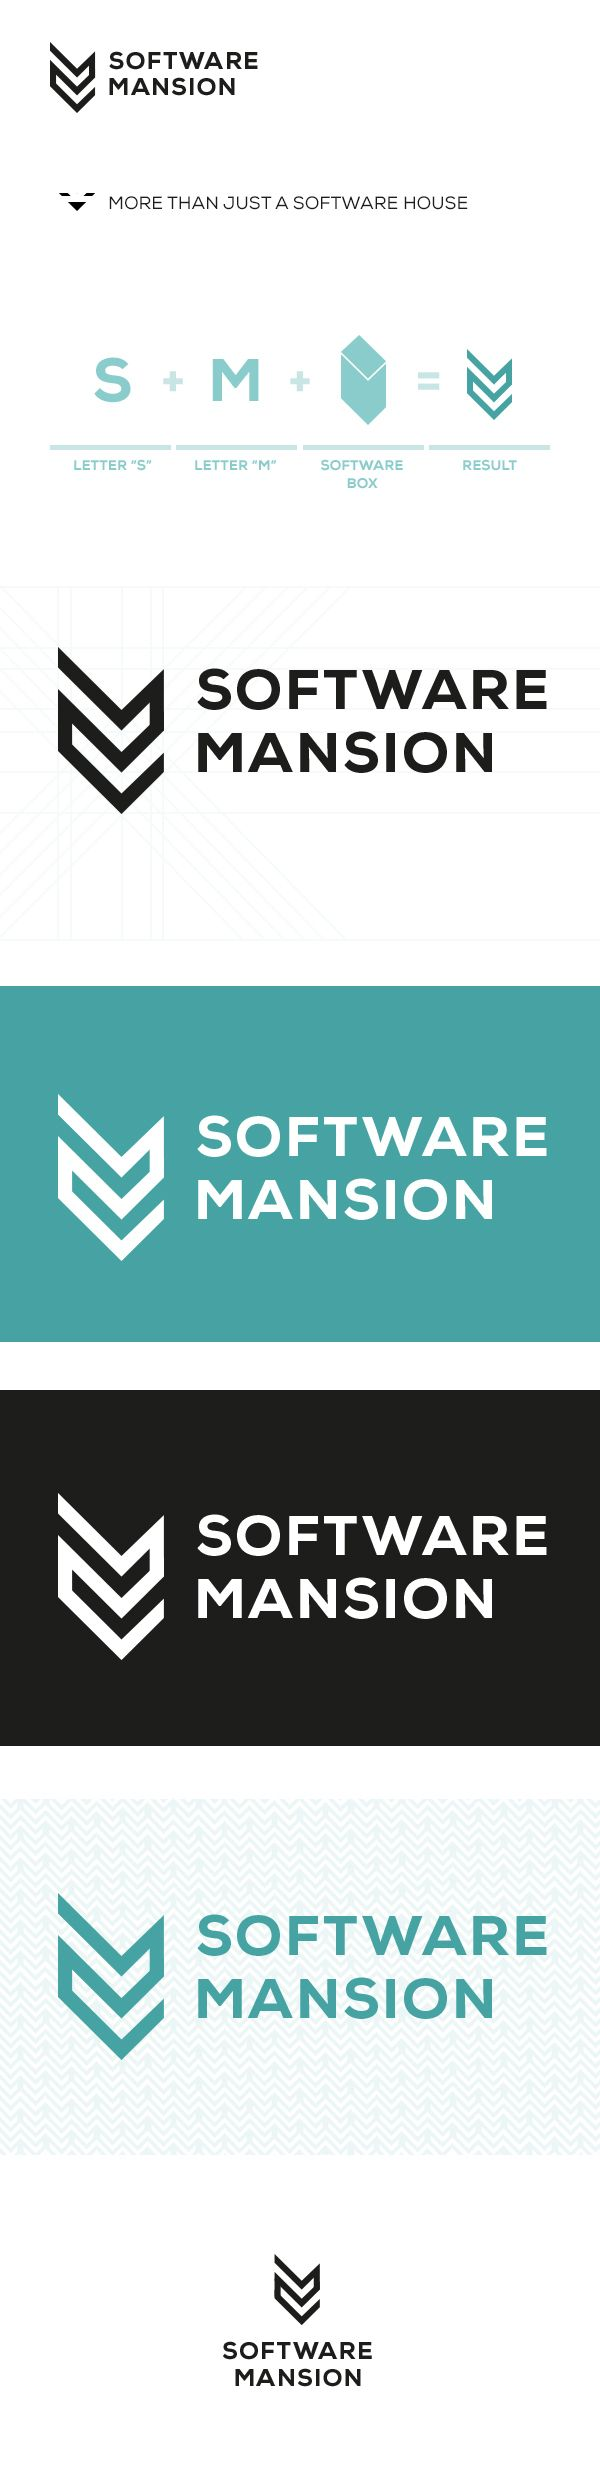 Software Mansion by Kamil Zielinski, via Behance